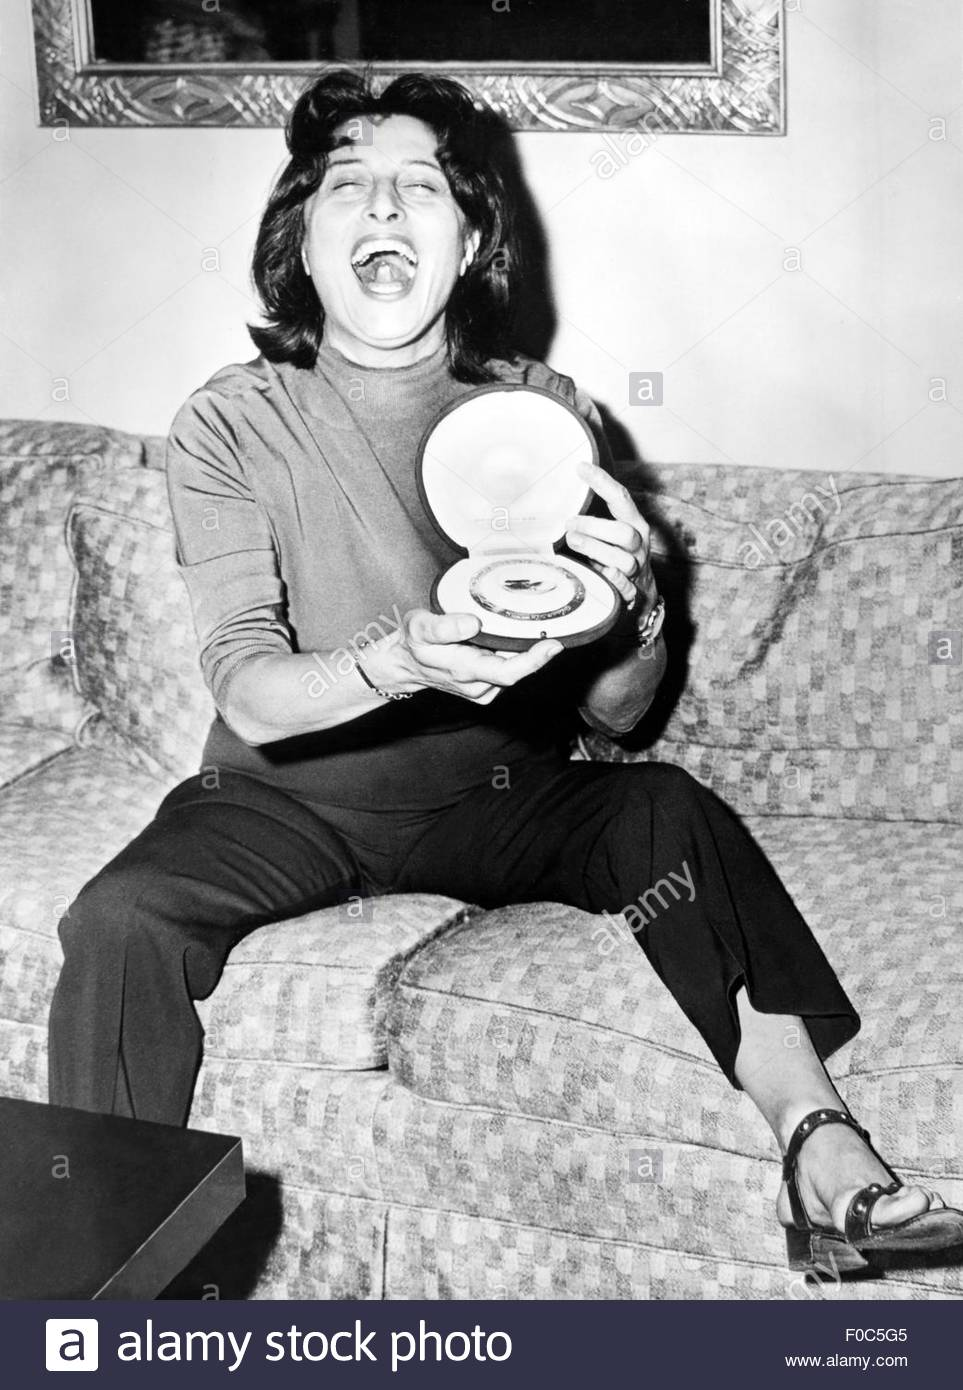 Magnani, Anna, 7.3.1908 - 26.9.1973, Italian actress, half length, with the award of the German film critics for - Stock Image